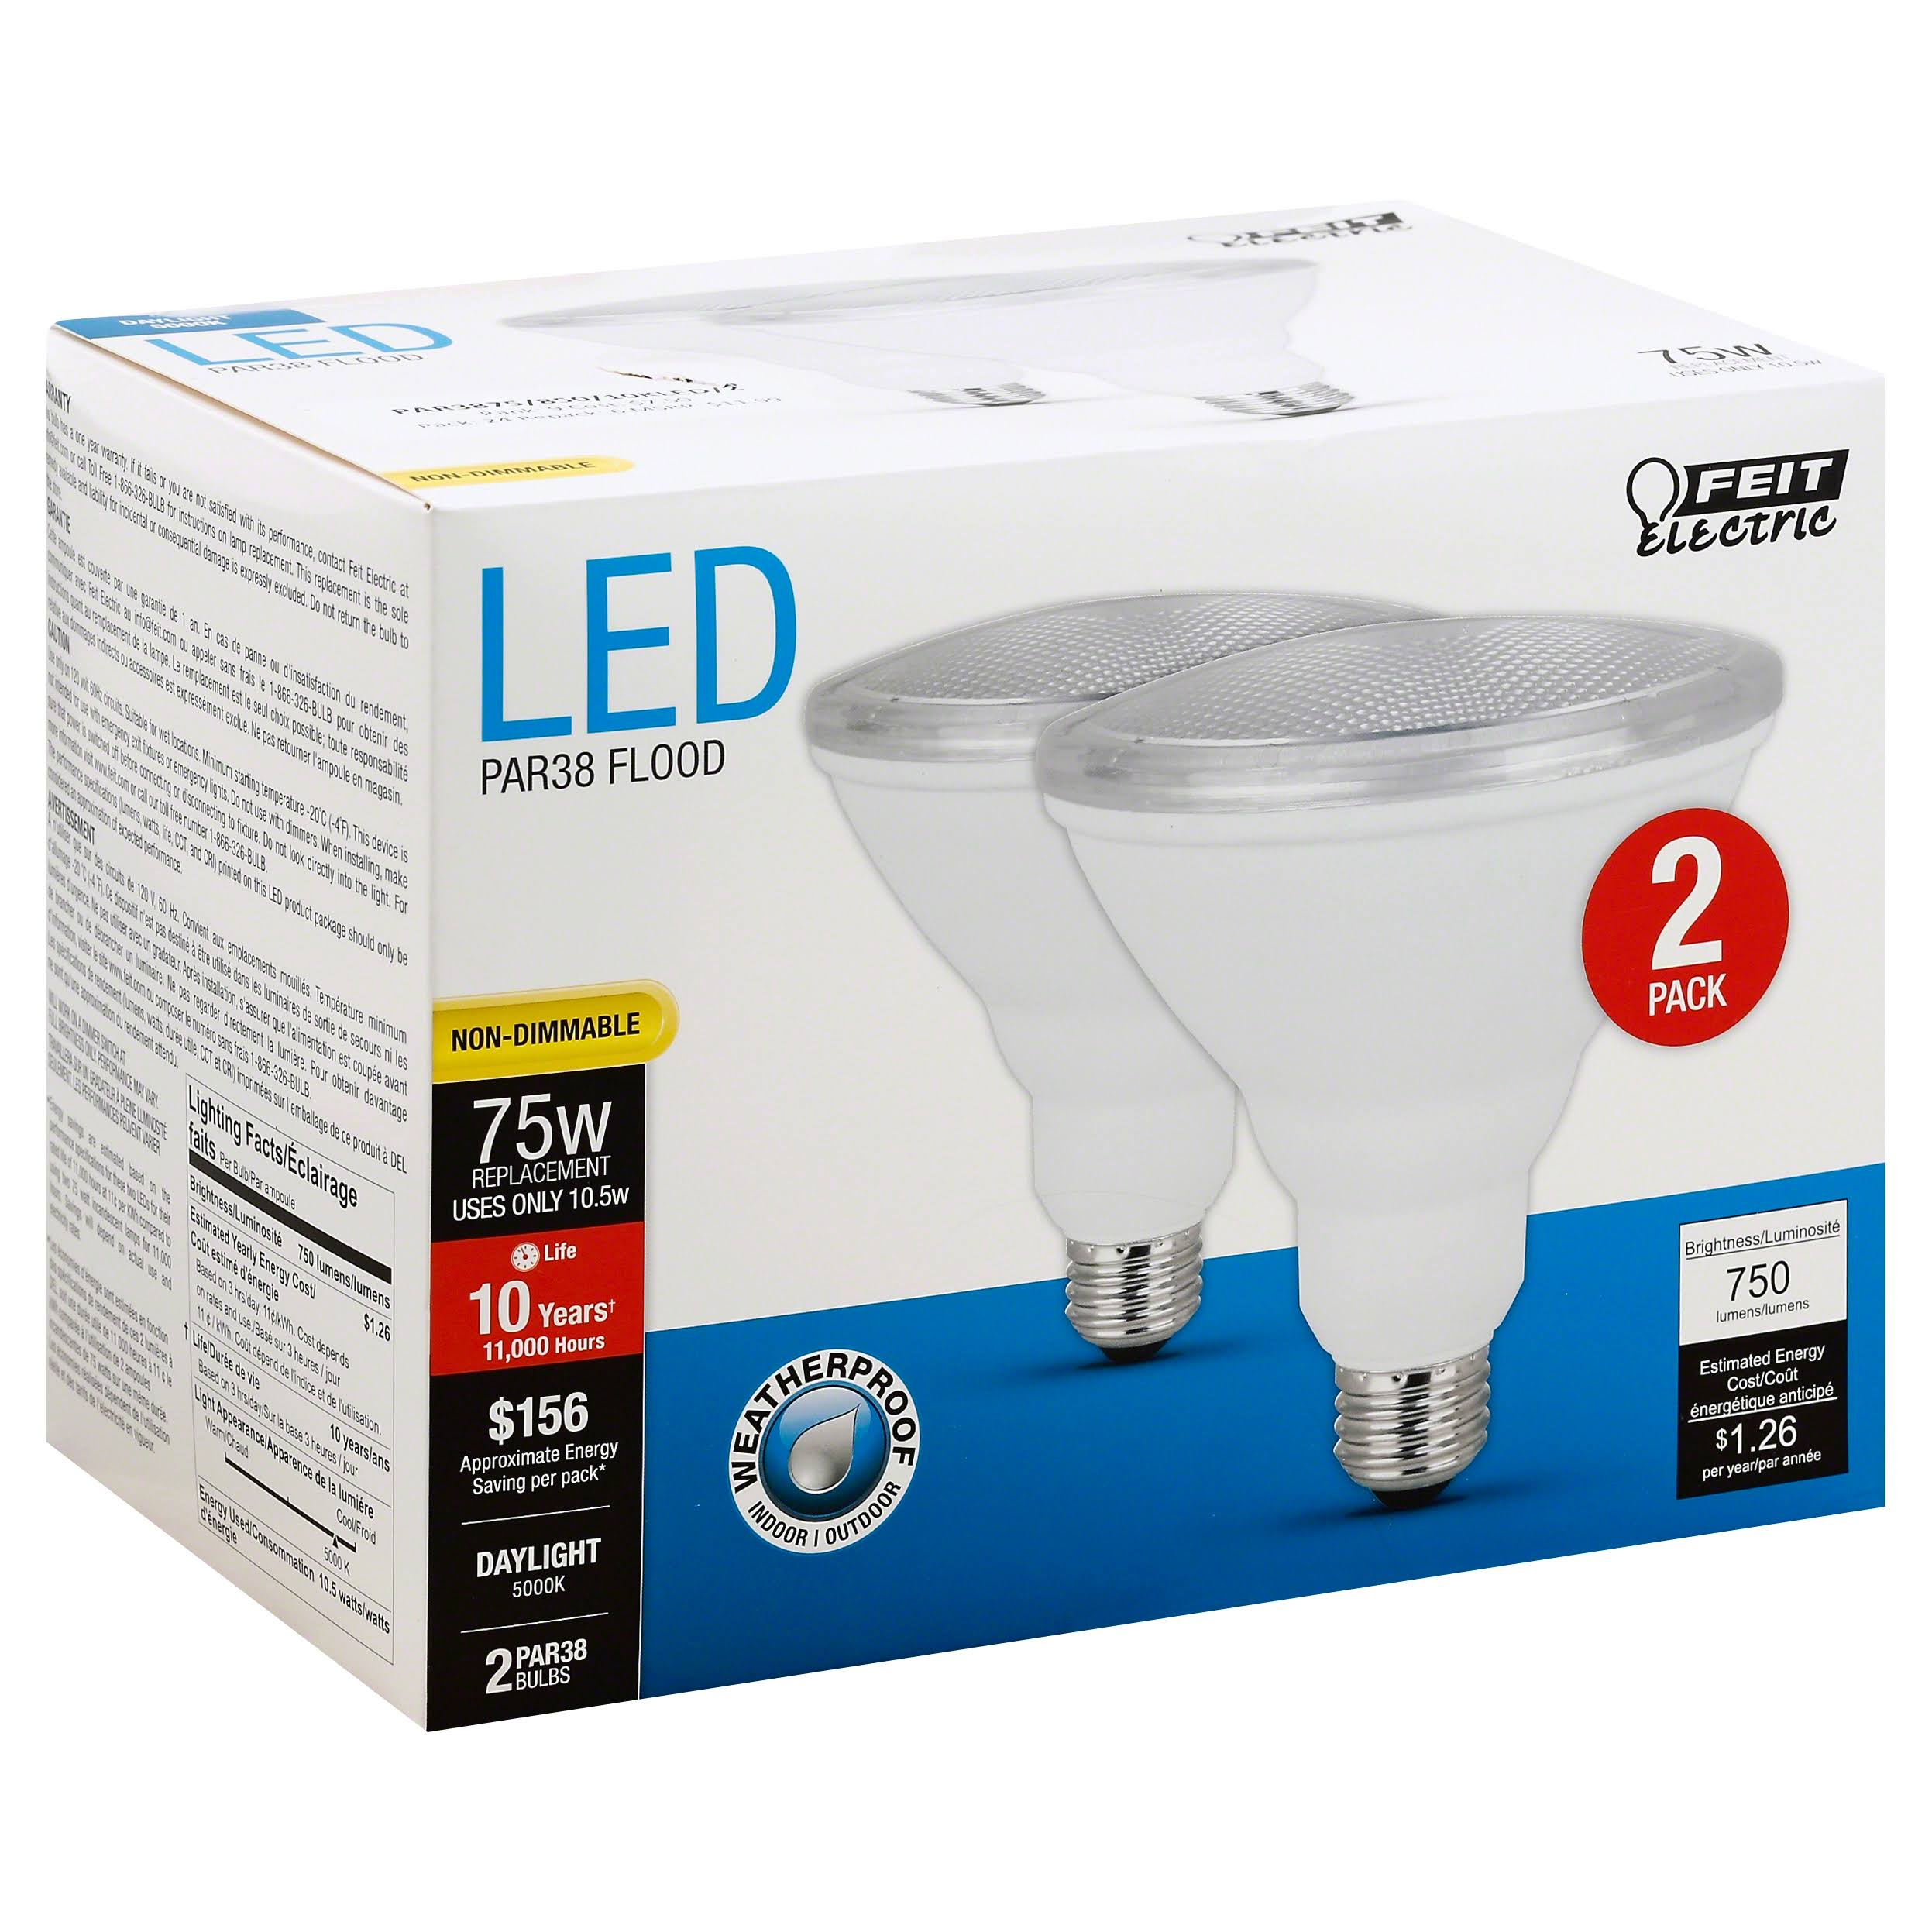 Feit Electric Dimmable Led Bulb - 75W, 750 Lumens